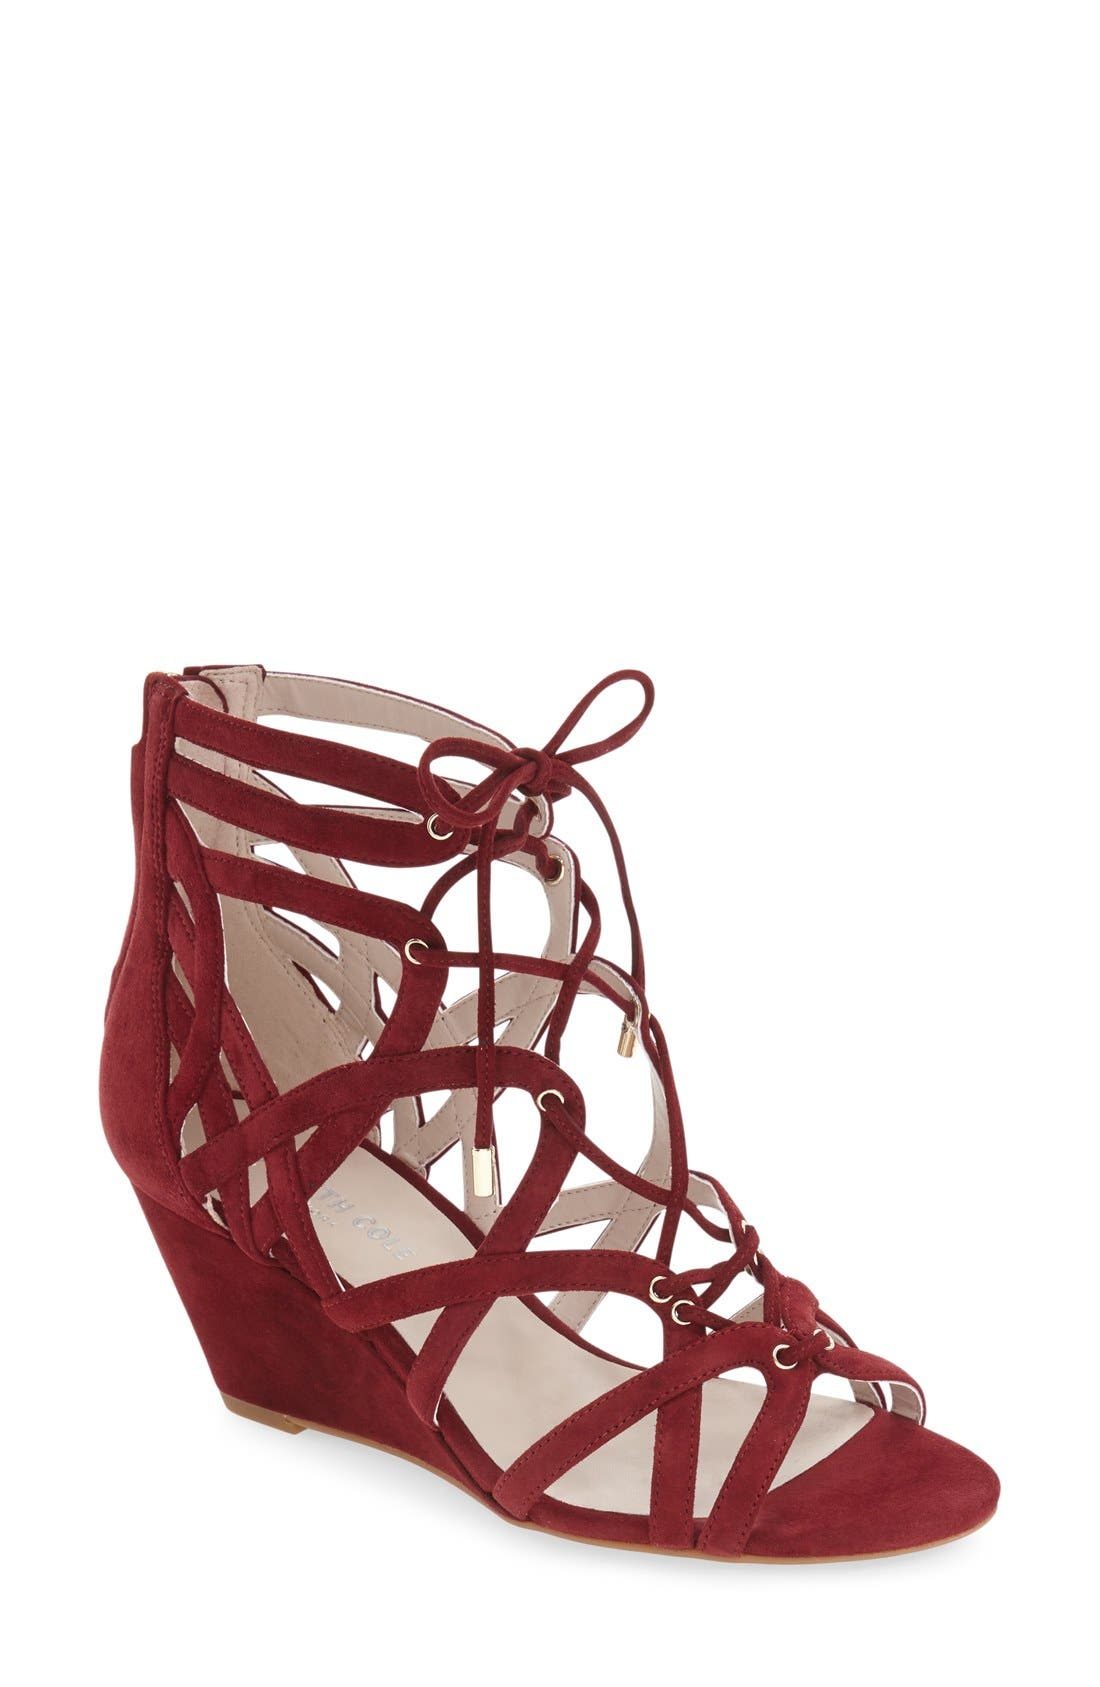 Alternate Image 1 Selected - Kenneth Cole New York 'Dylan' Wedge Sandal (Women)